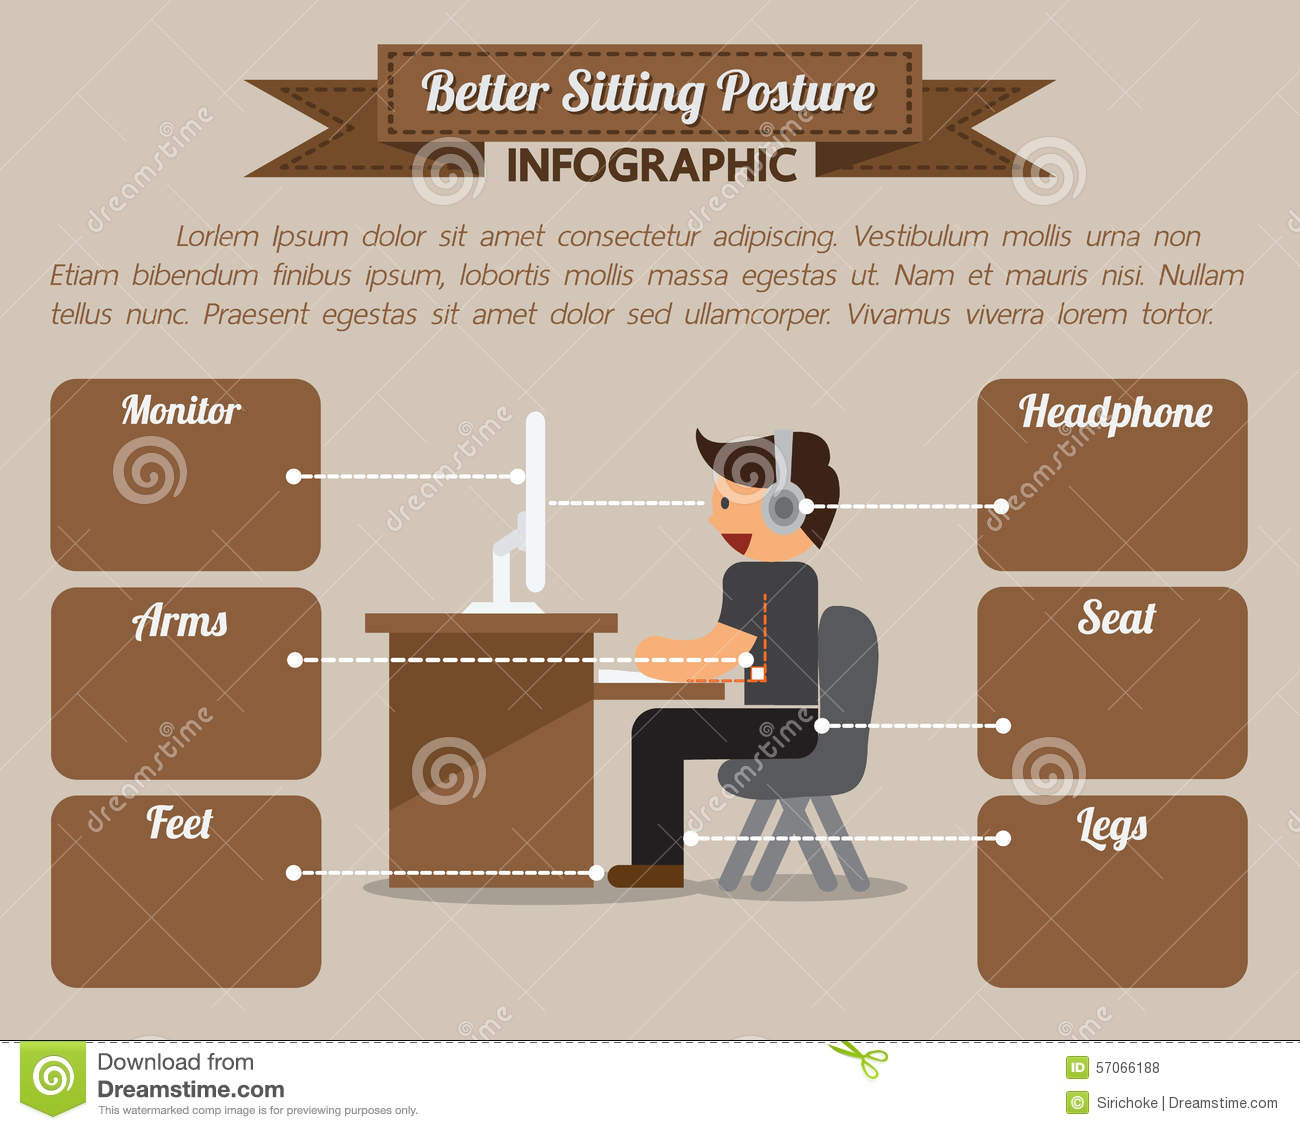 Better Sitting Posture Infographic Stock Photo Image